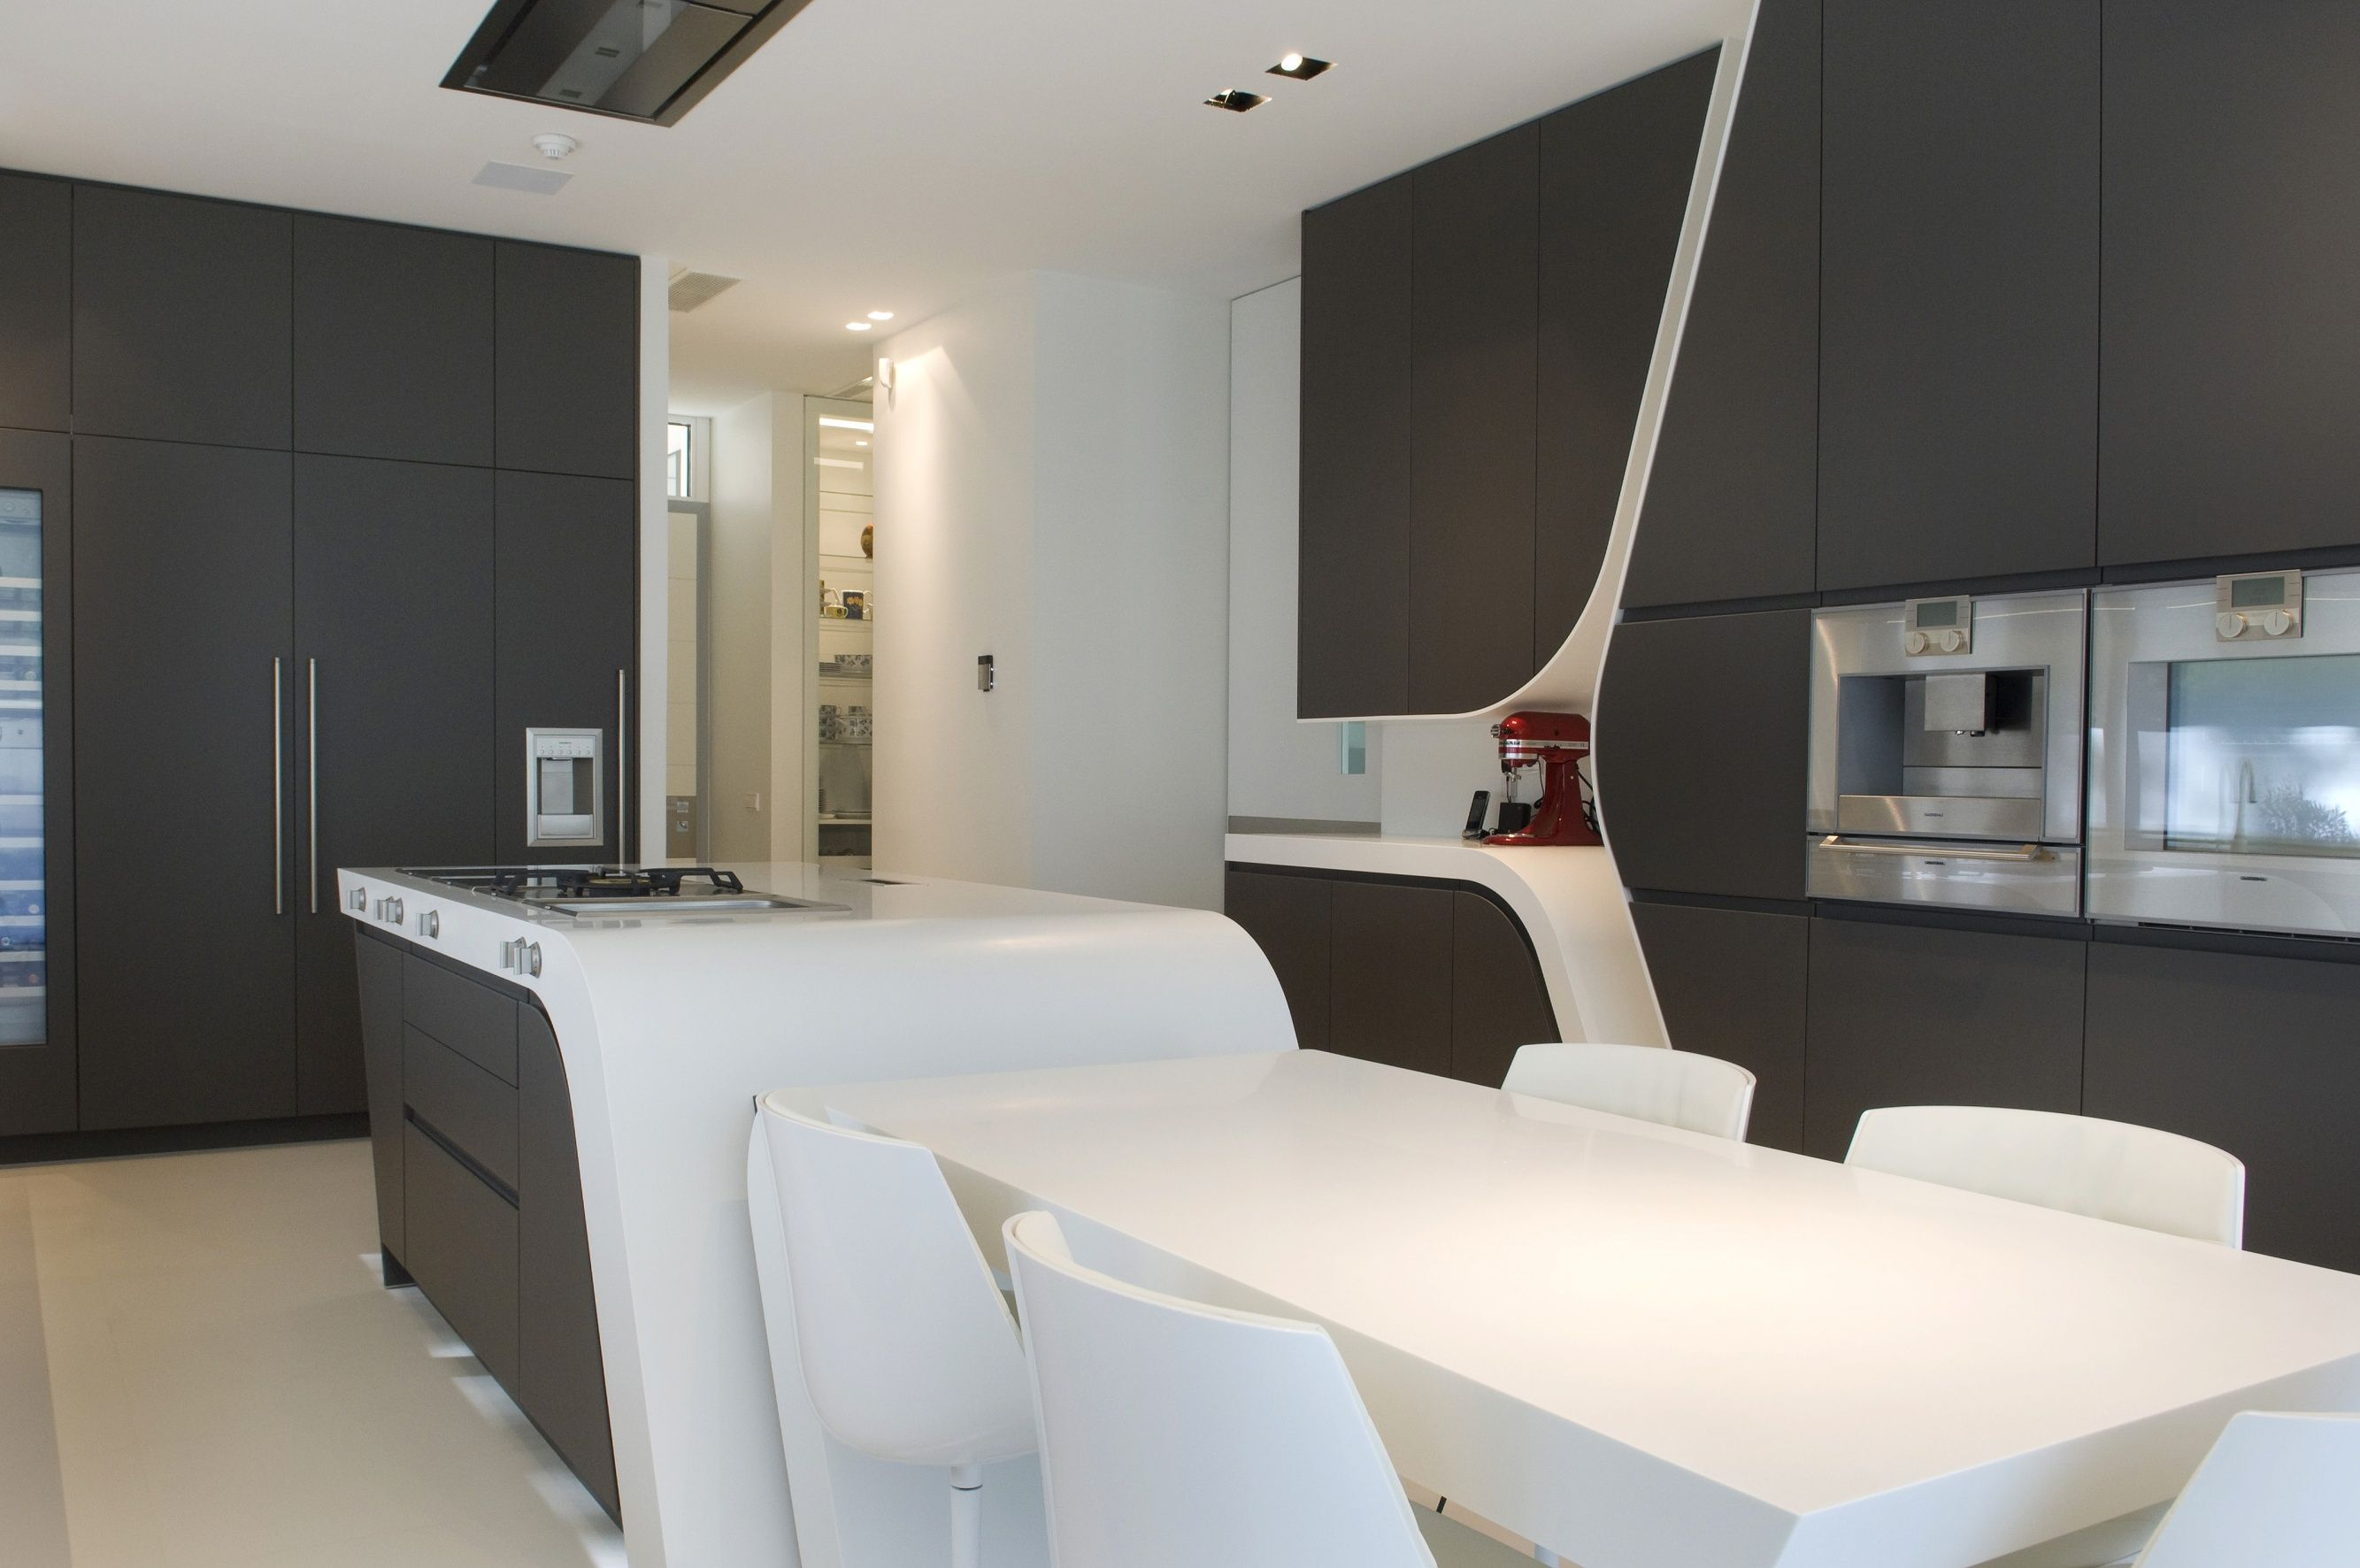 Modern kitchen memory house by a cero